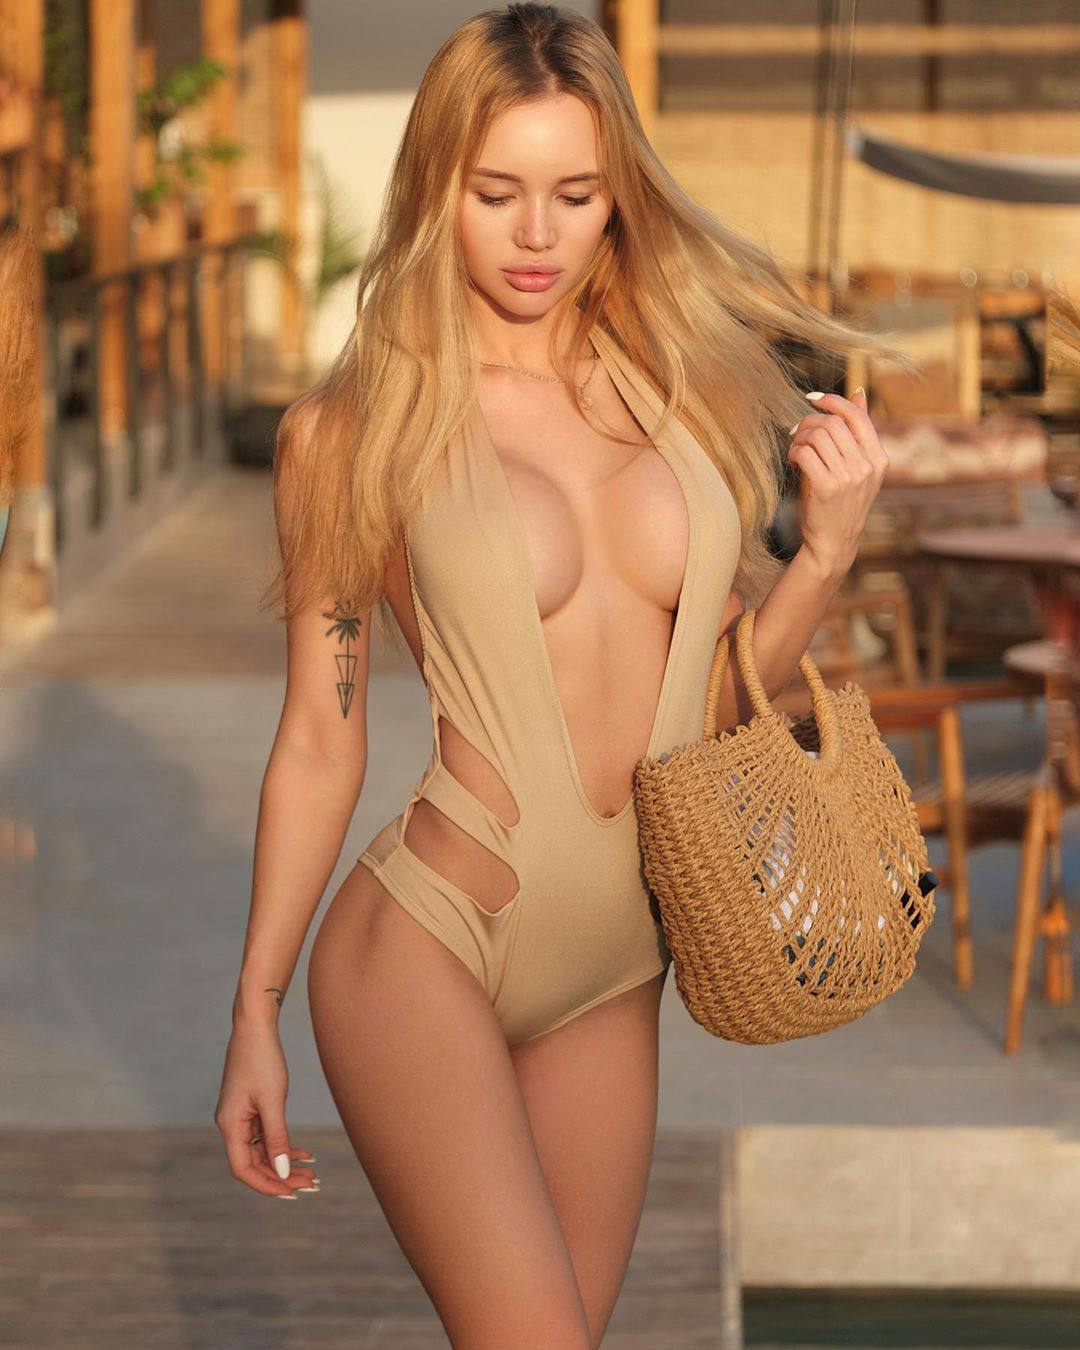 Olya Abramovich – Hot Boobs In Topless Beach Photoshoot (nsfw) 0034